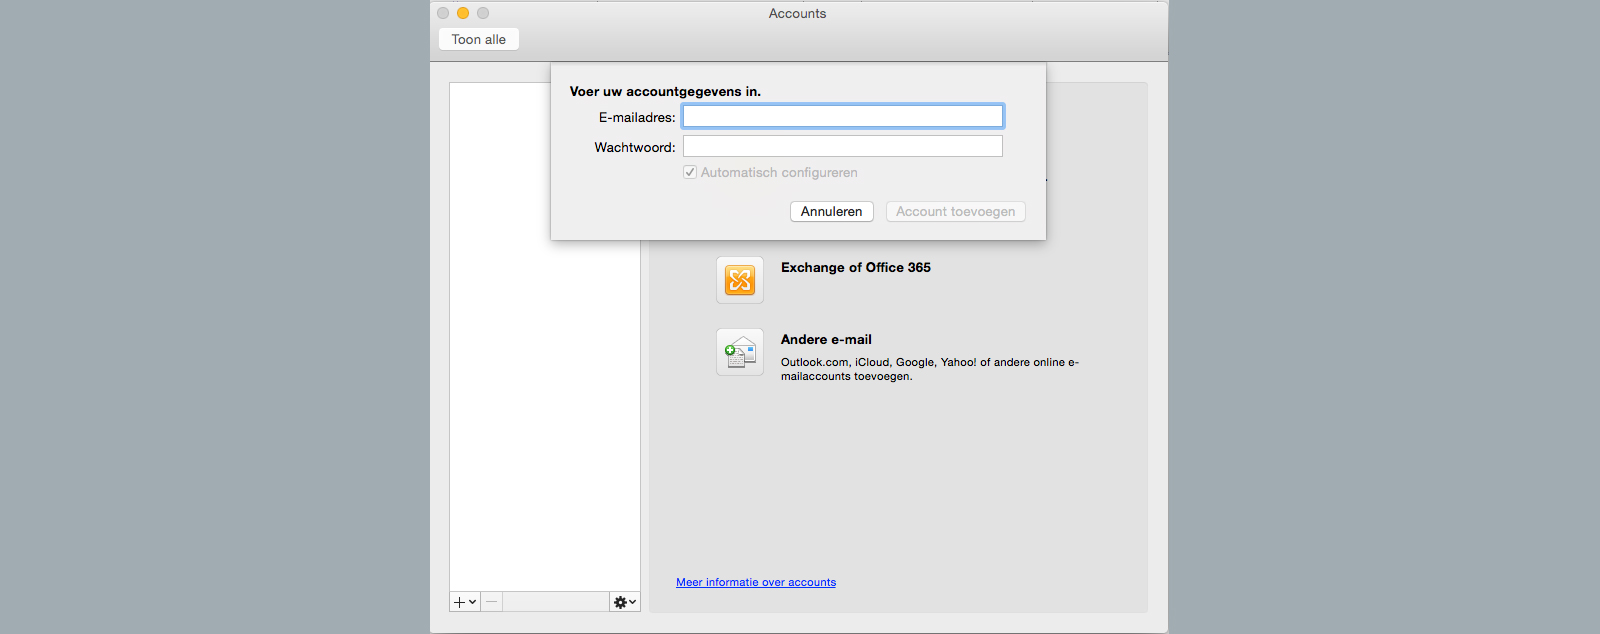 voer accountgegevens in outlook 2011 for mac e-mailadres wachtwoord